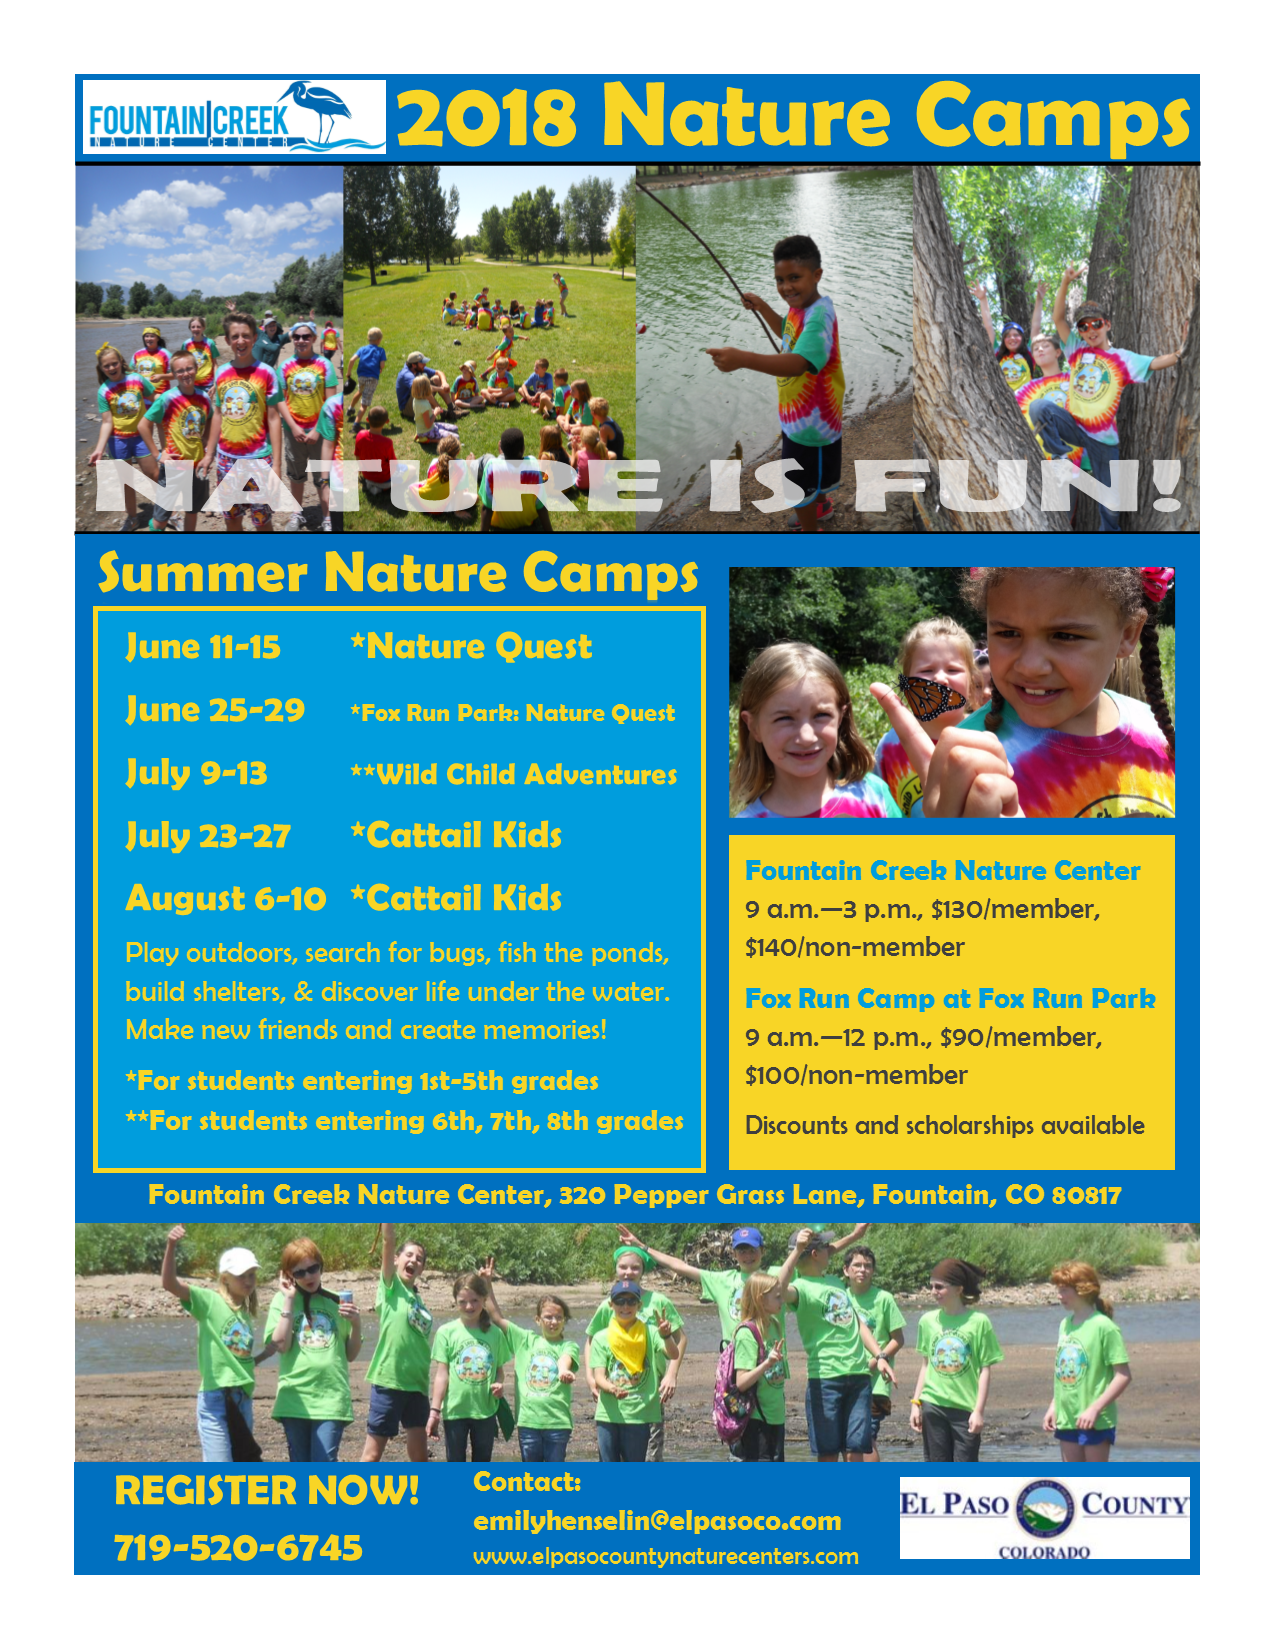 2018 Summer Camp flyer for Fountain Creek Nature Camps